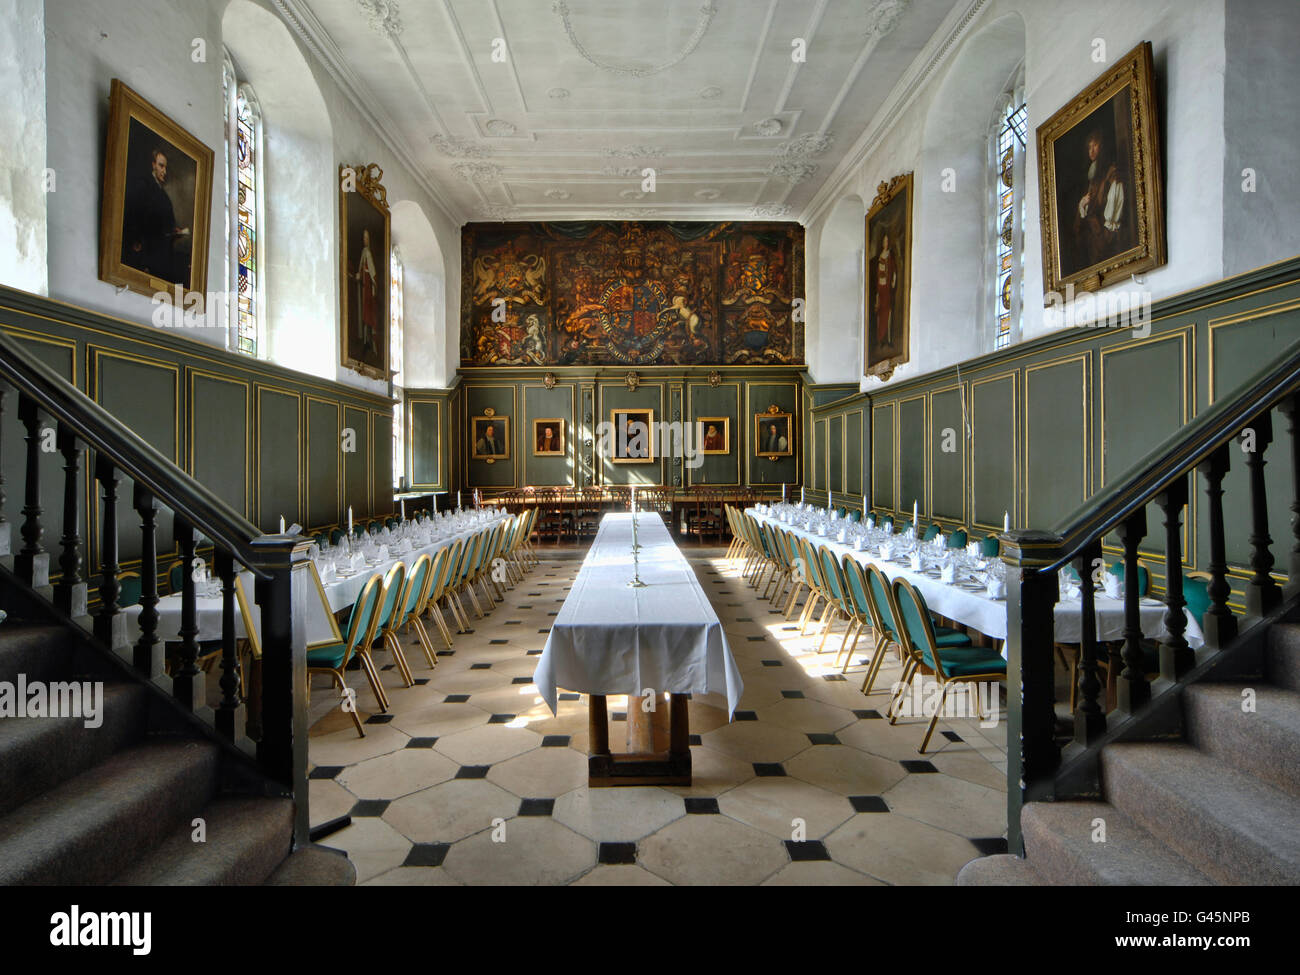 The Dining Hall at Jesus College, Cambridge. View towards painting of Royal Crest on far wall. Three long tables - Stock Image